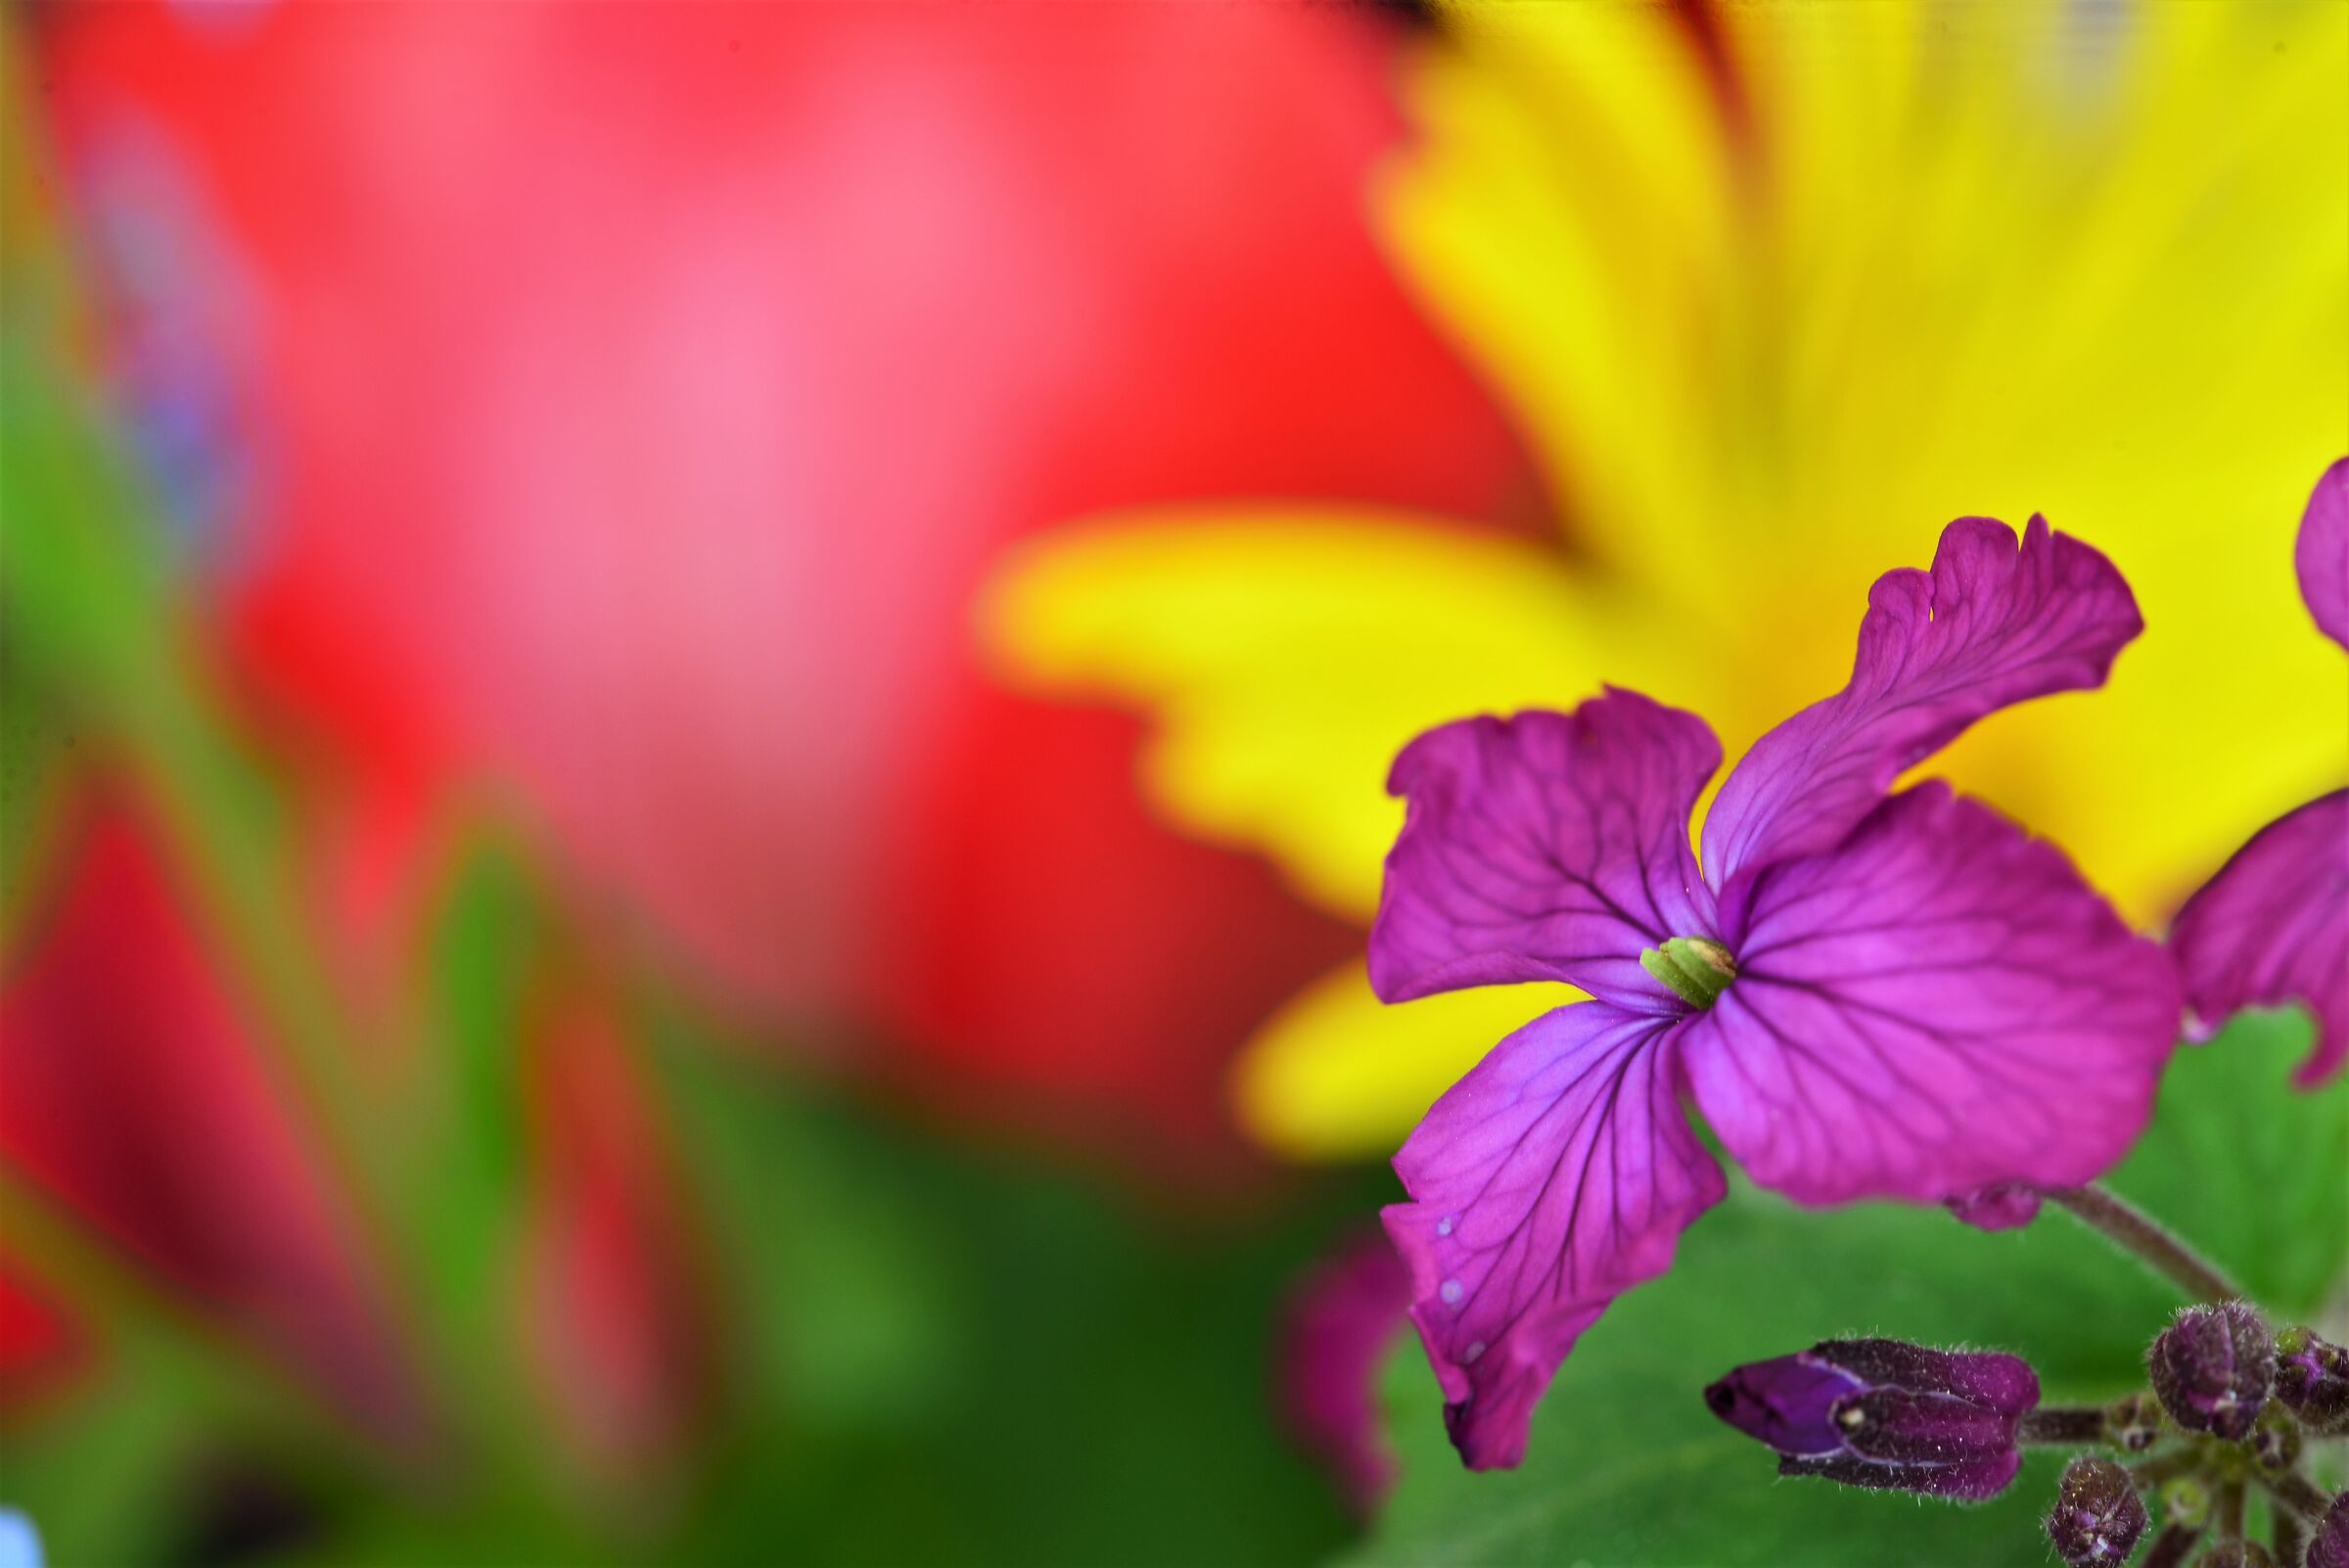 Color and spring...